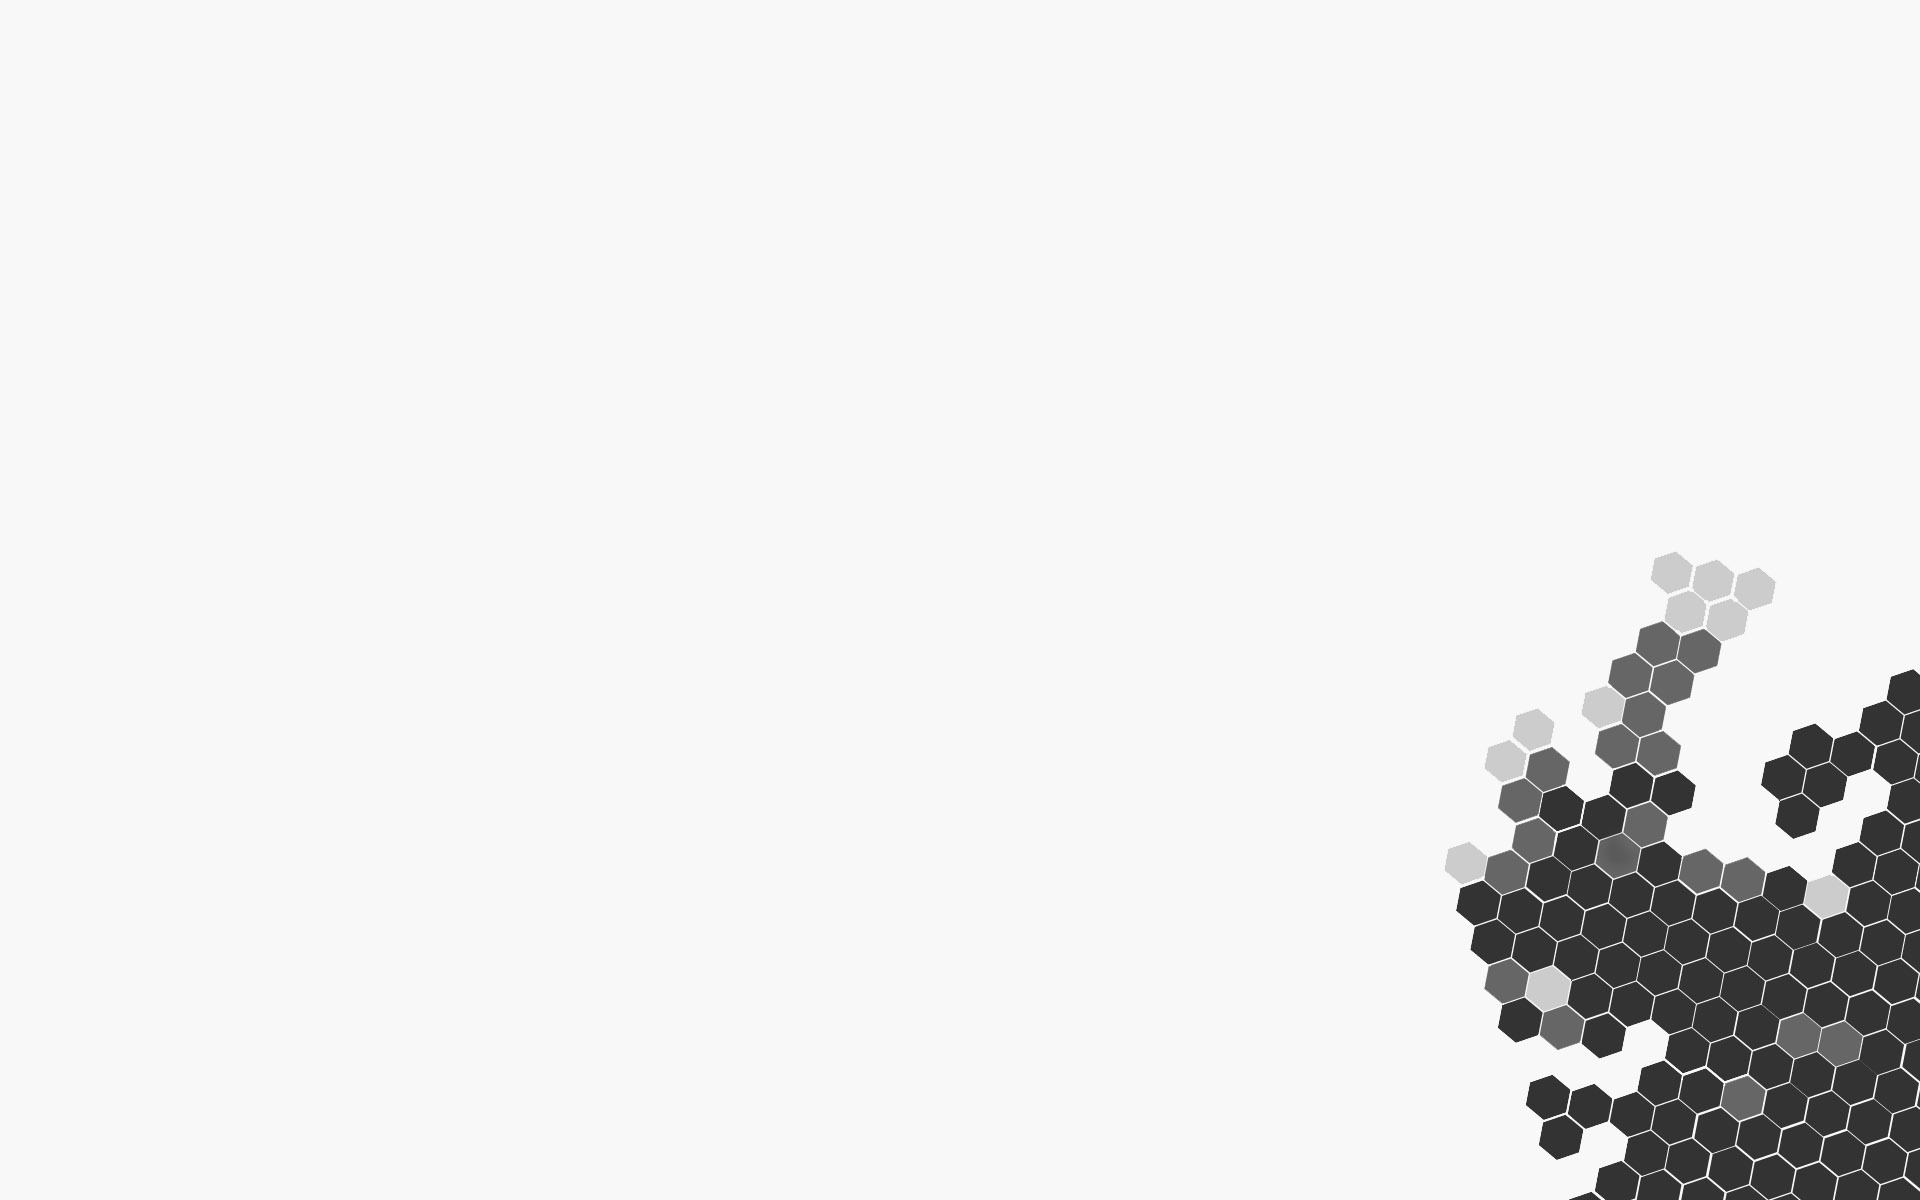 White Abstract Wallpaper For Computer